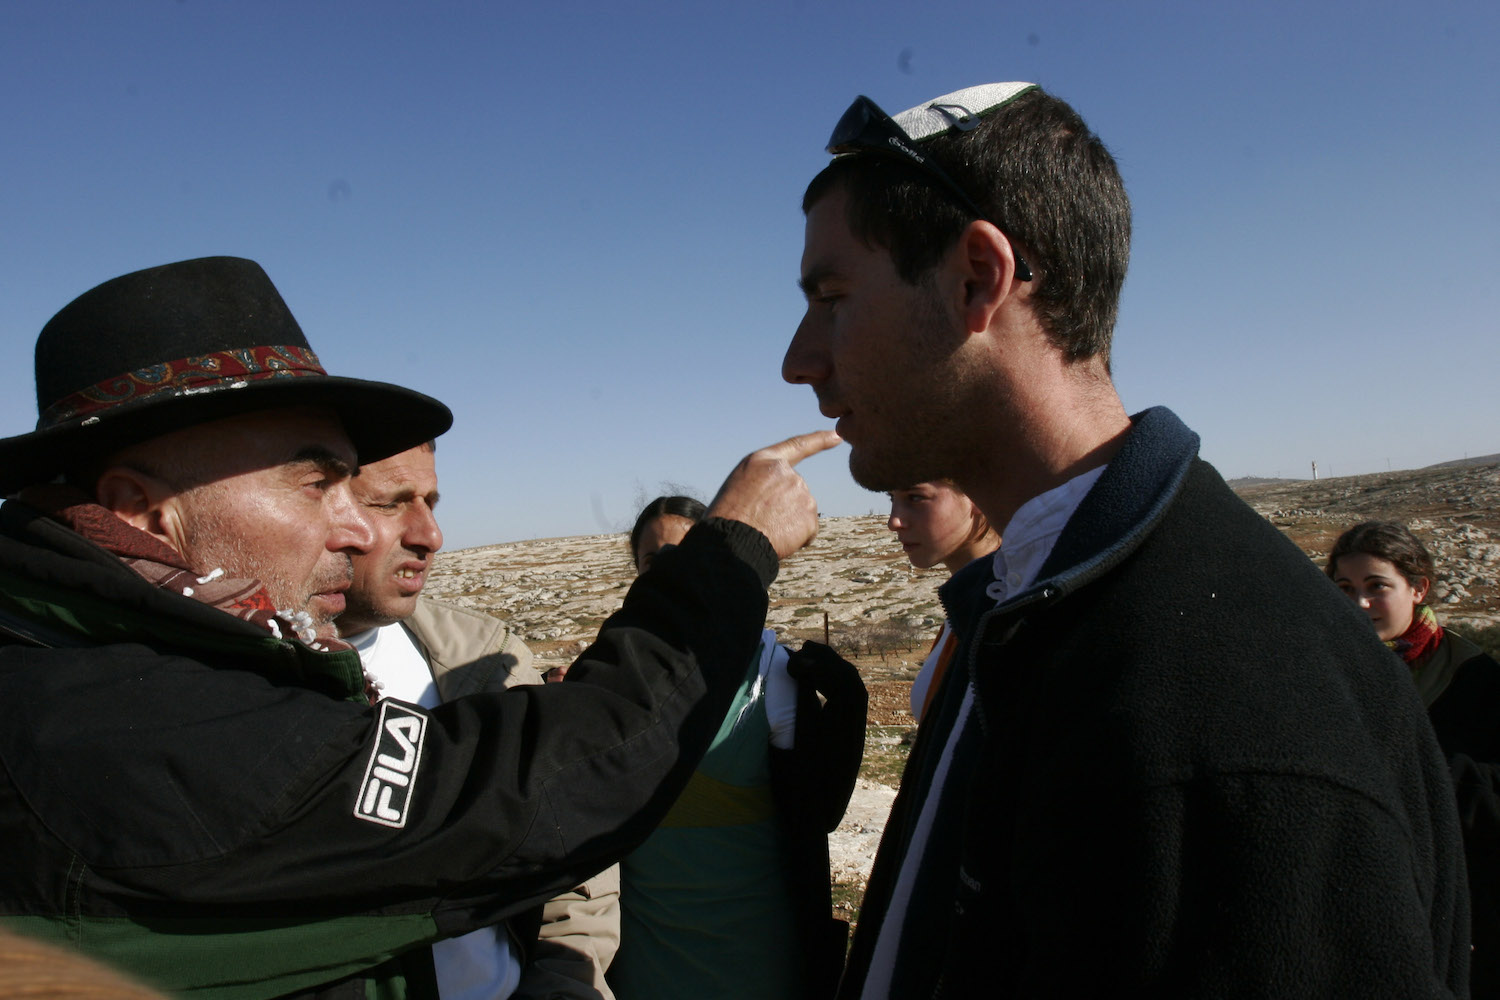 Ezra Nawi confronts an israeli settler during protest against settlement expansion and land grabs in Susya, West Bank, January 13th, 2007. (Oren Ziv/Activestills.org)